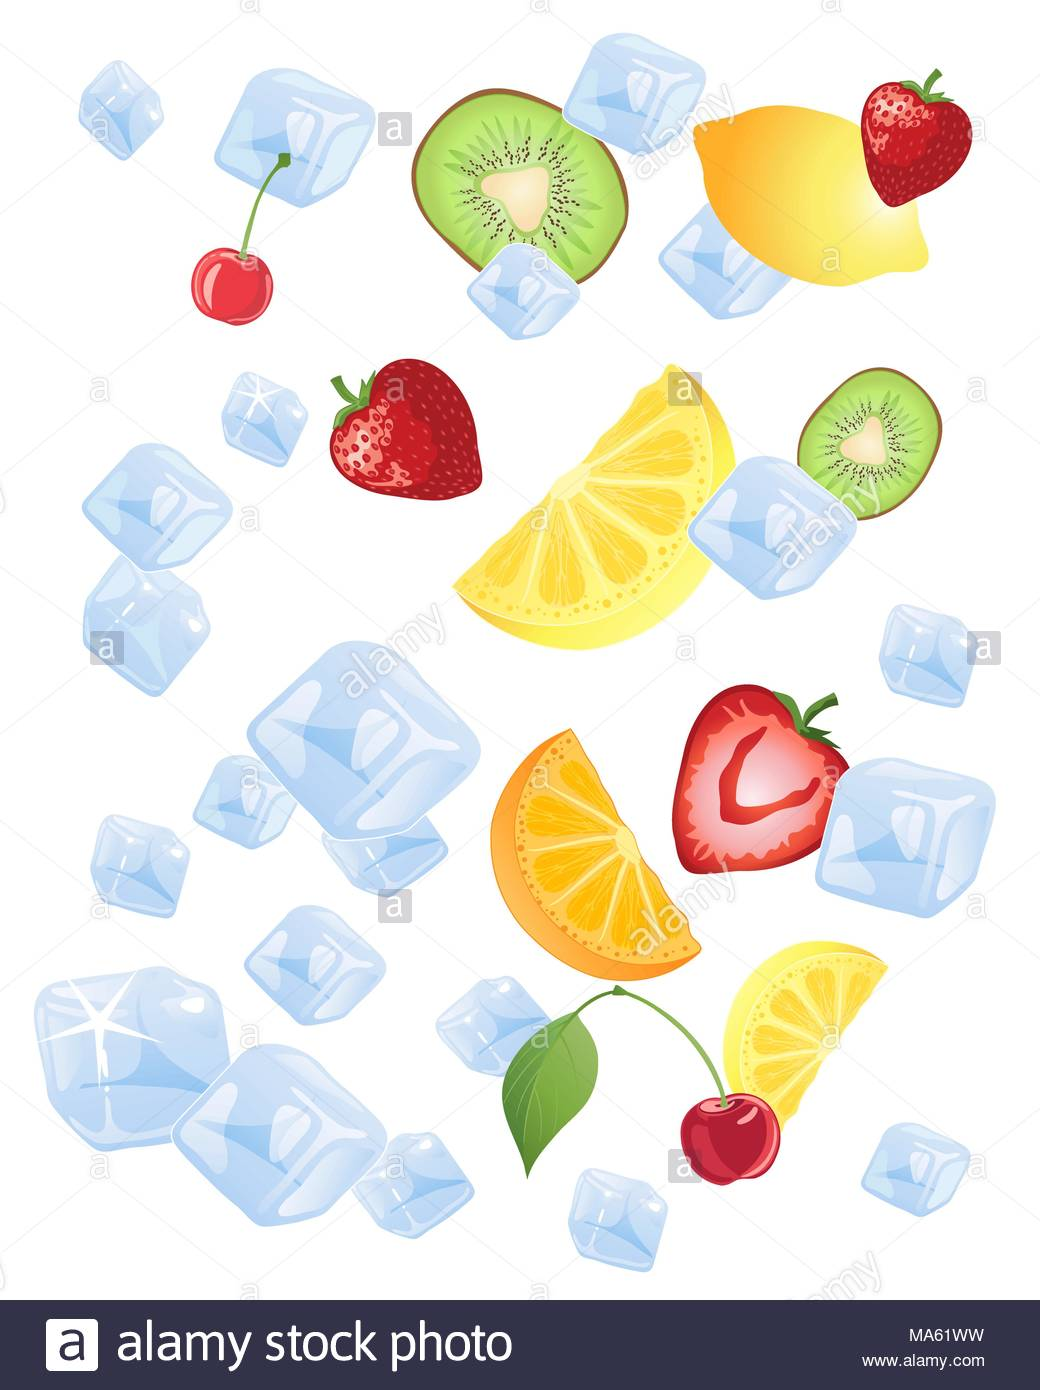 a vector illustration in eps 10 format of delicious fresh fruit 1040x1390